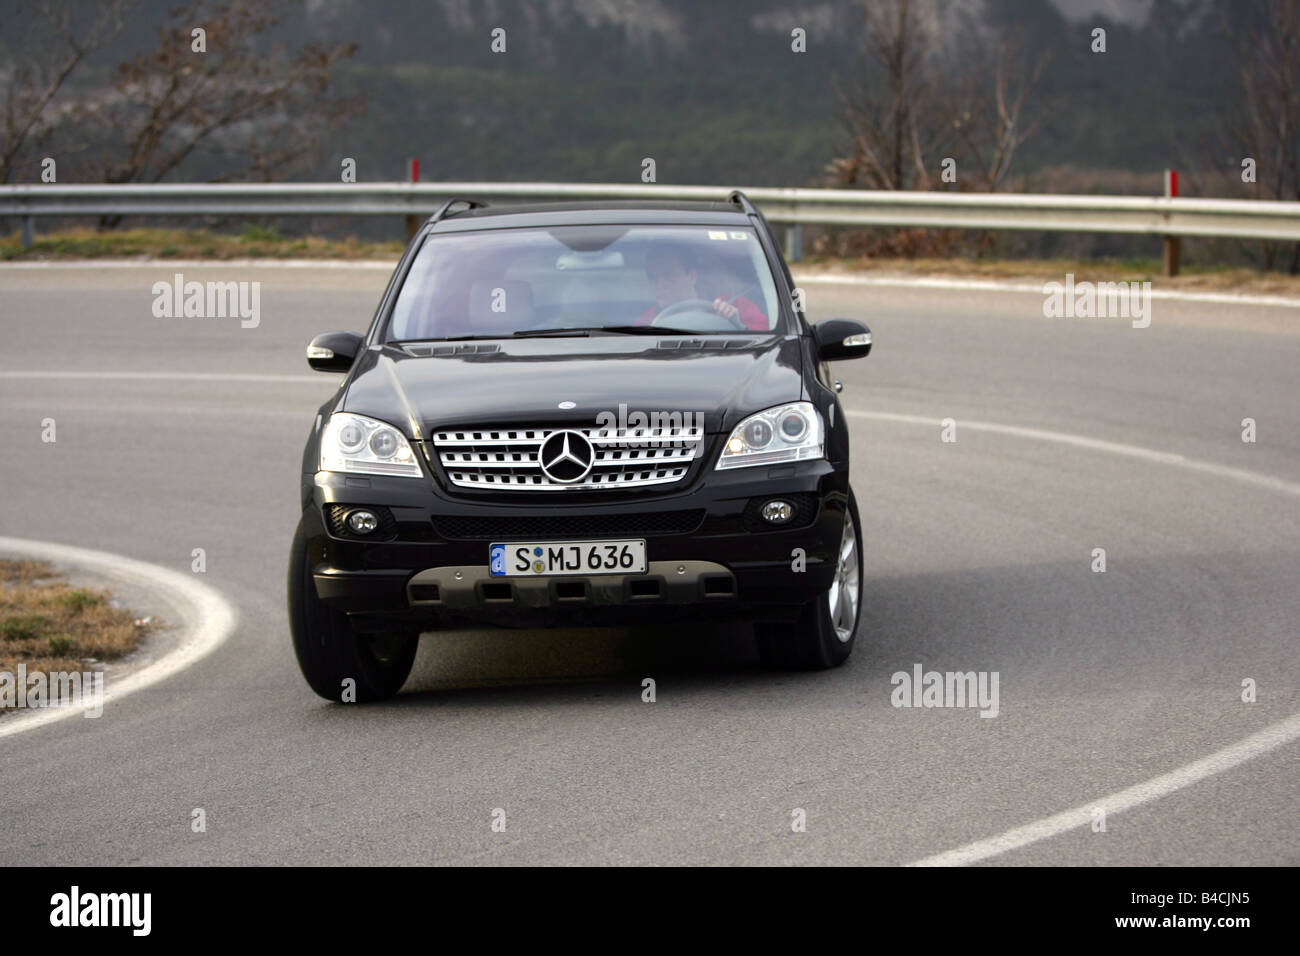 mercedes ml 320 cdi model year 2005 black driving diagonal from stock photo royalty free. Black Bedroom Furniture Sets. Home Design Ideas